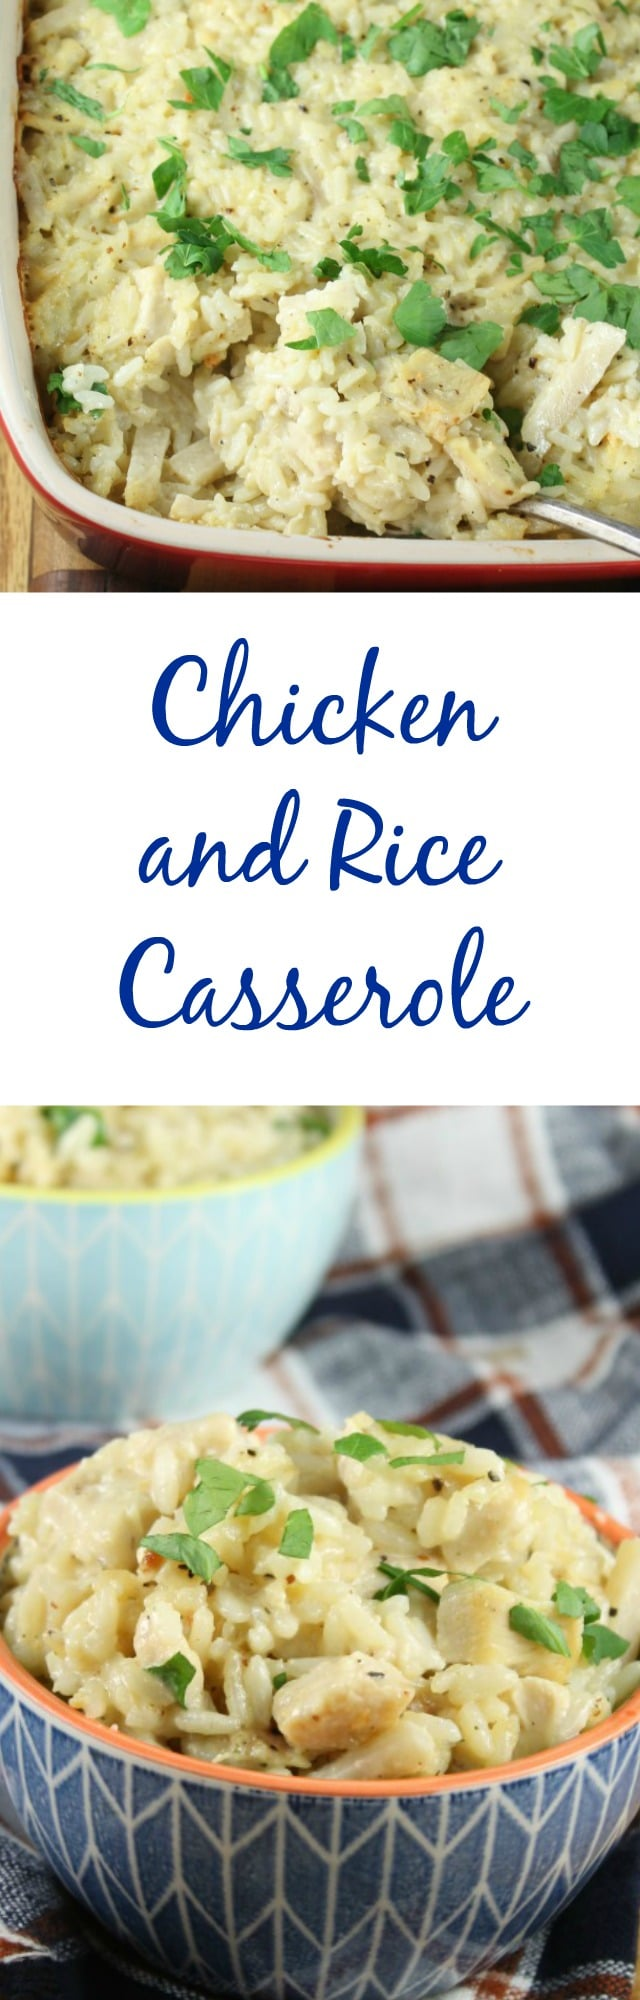 Classic Chicken and Rice Casserole Recipe from scratch (no can soups) is delicious comfort food that the whole family will love! #ProgressiveEats from MissintheKitchen.com